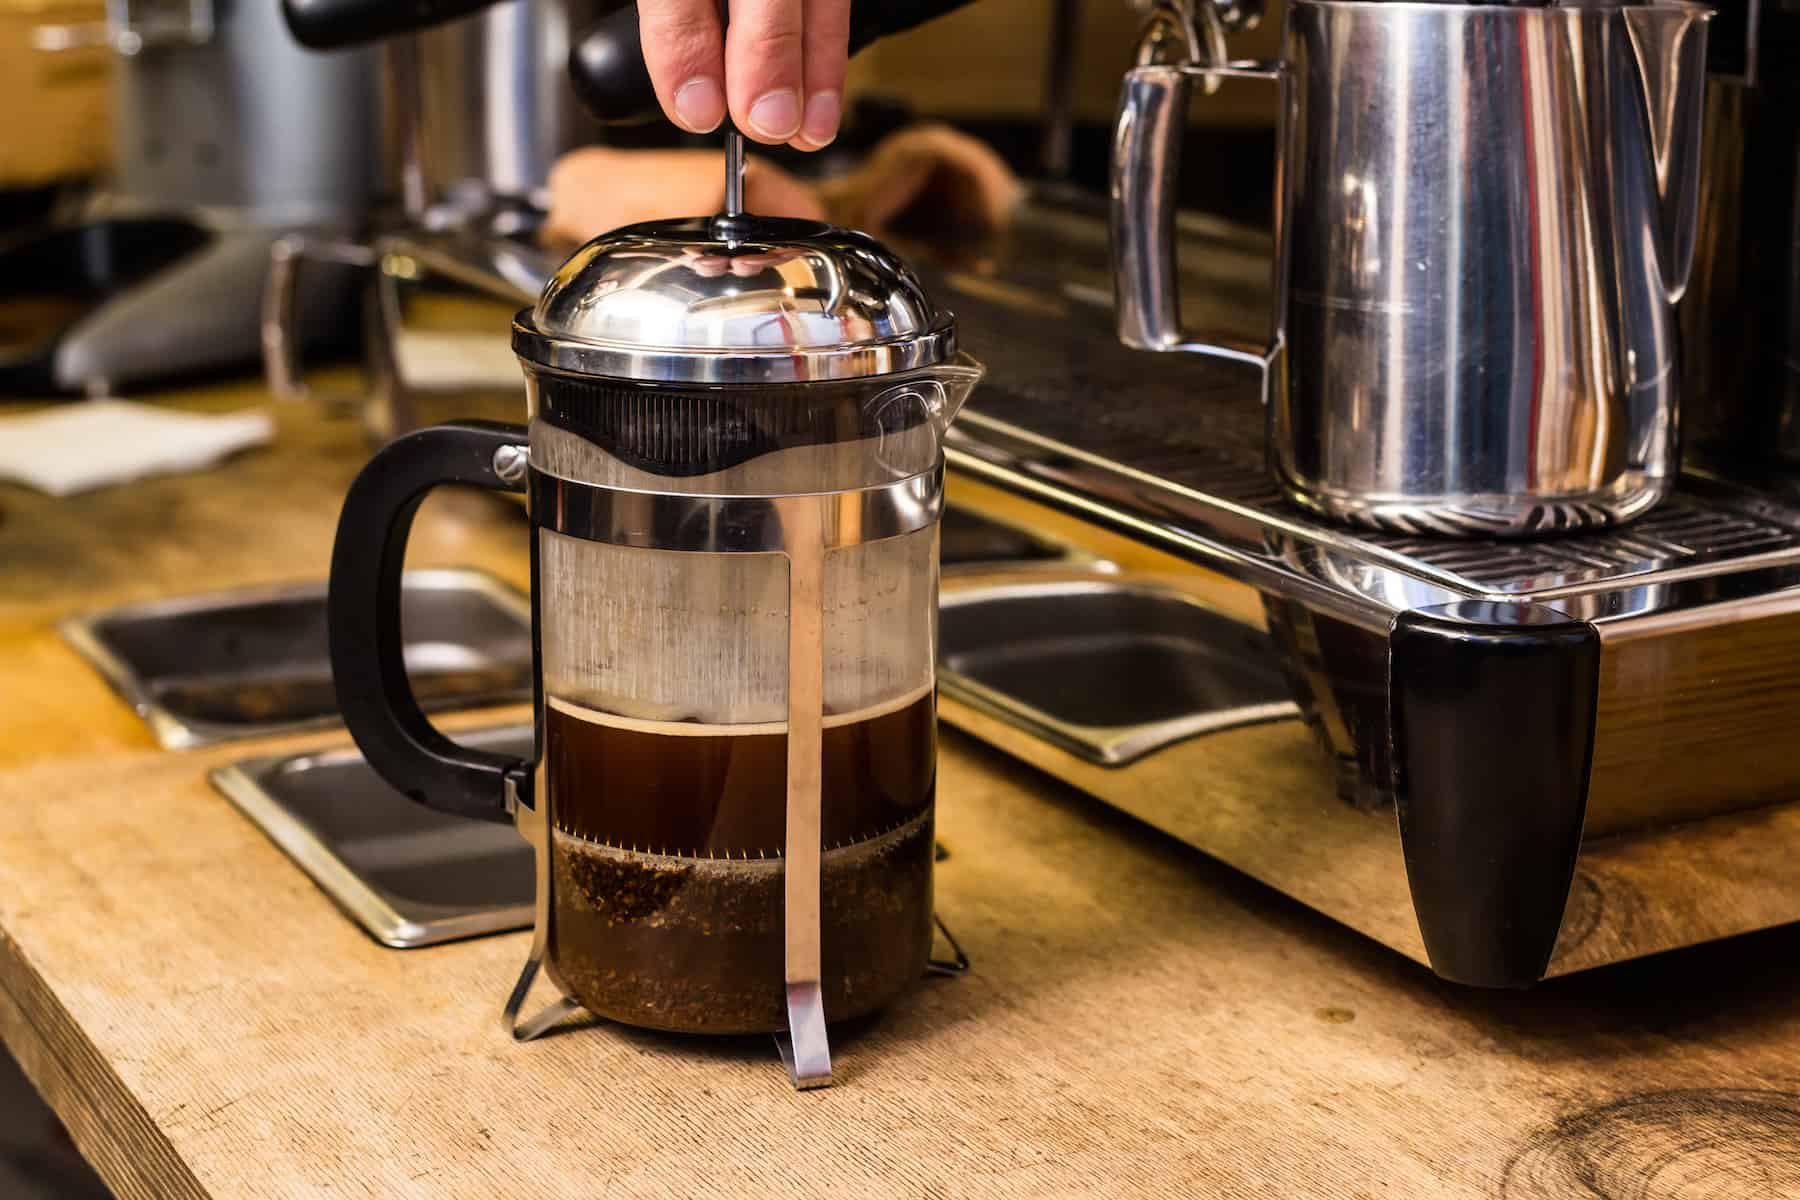 Pressing on a french press